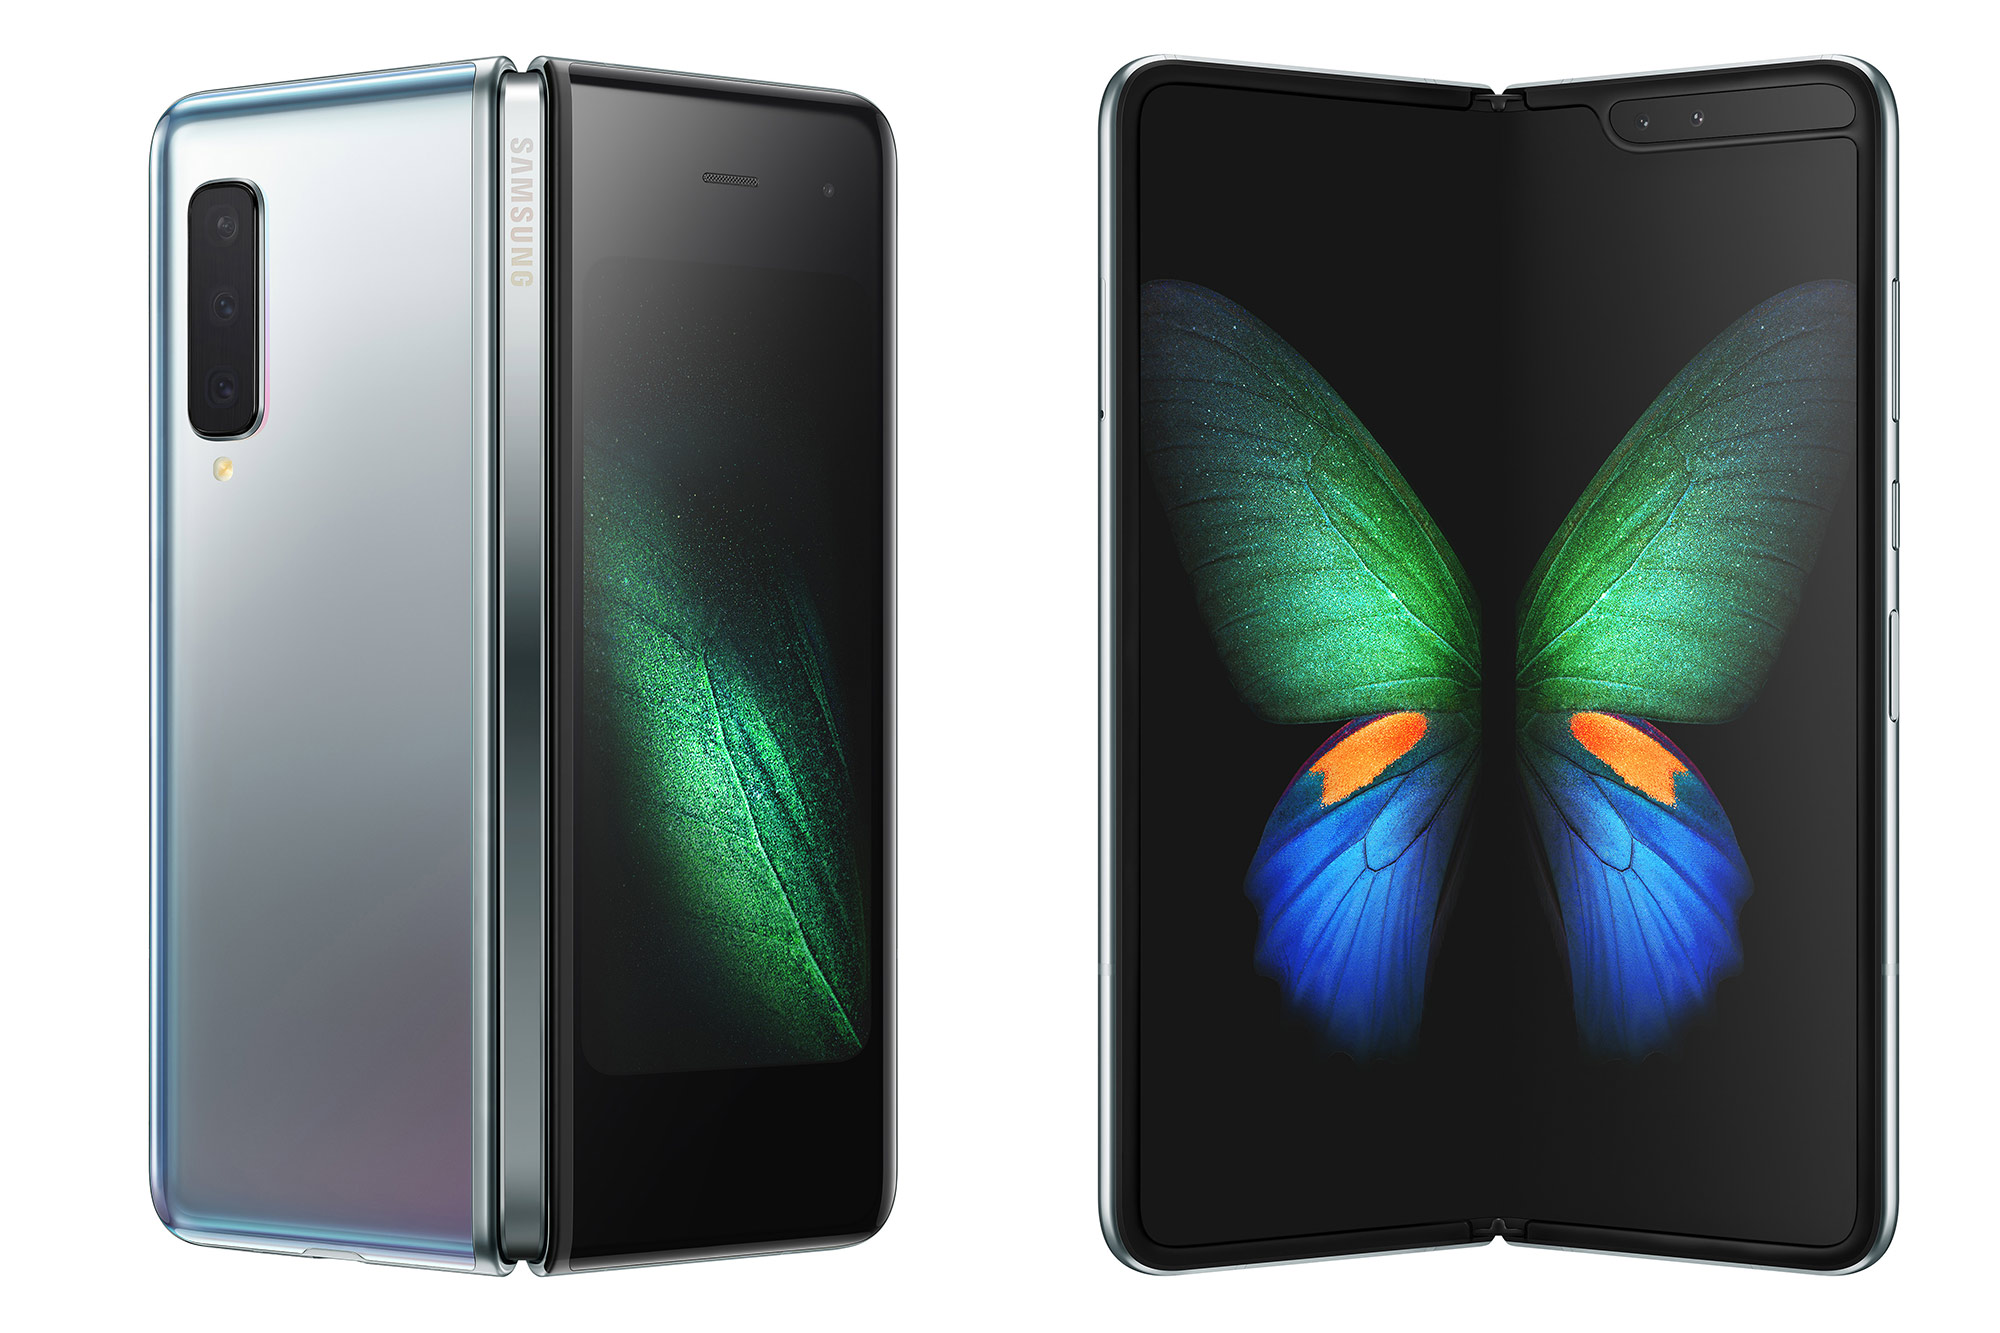 The (new and improved) Galaxy Fold.